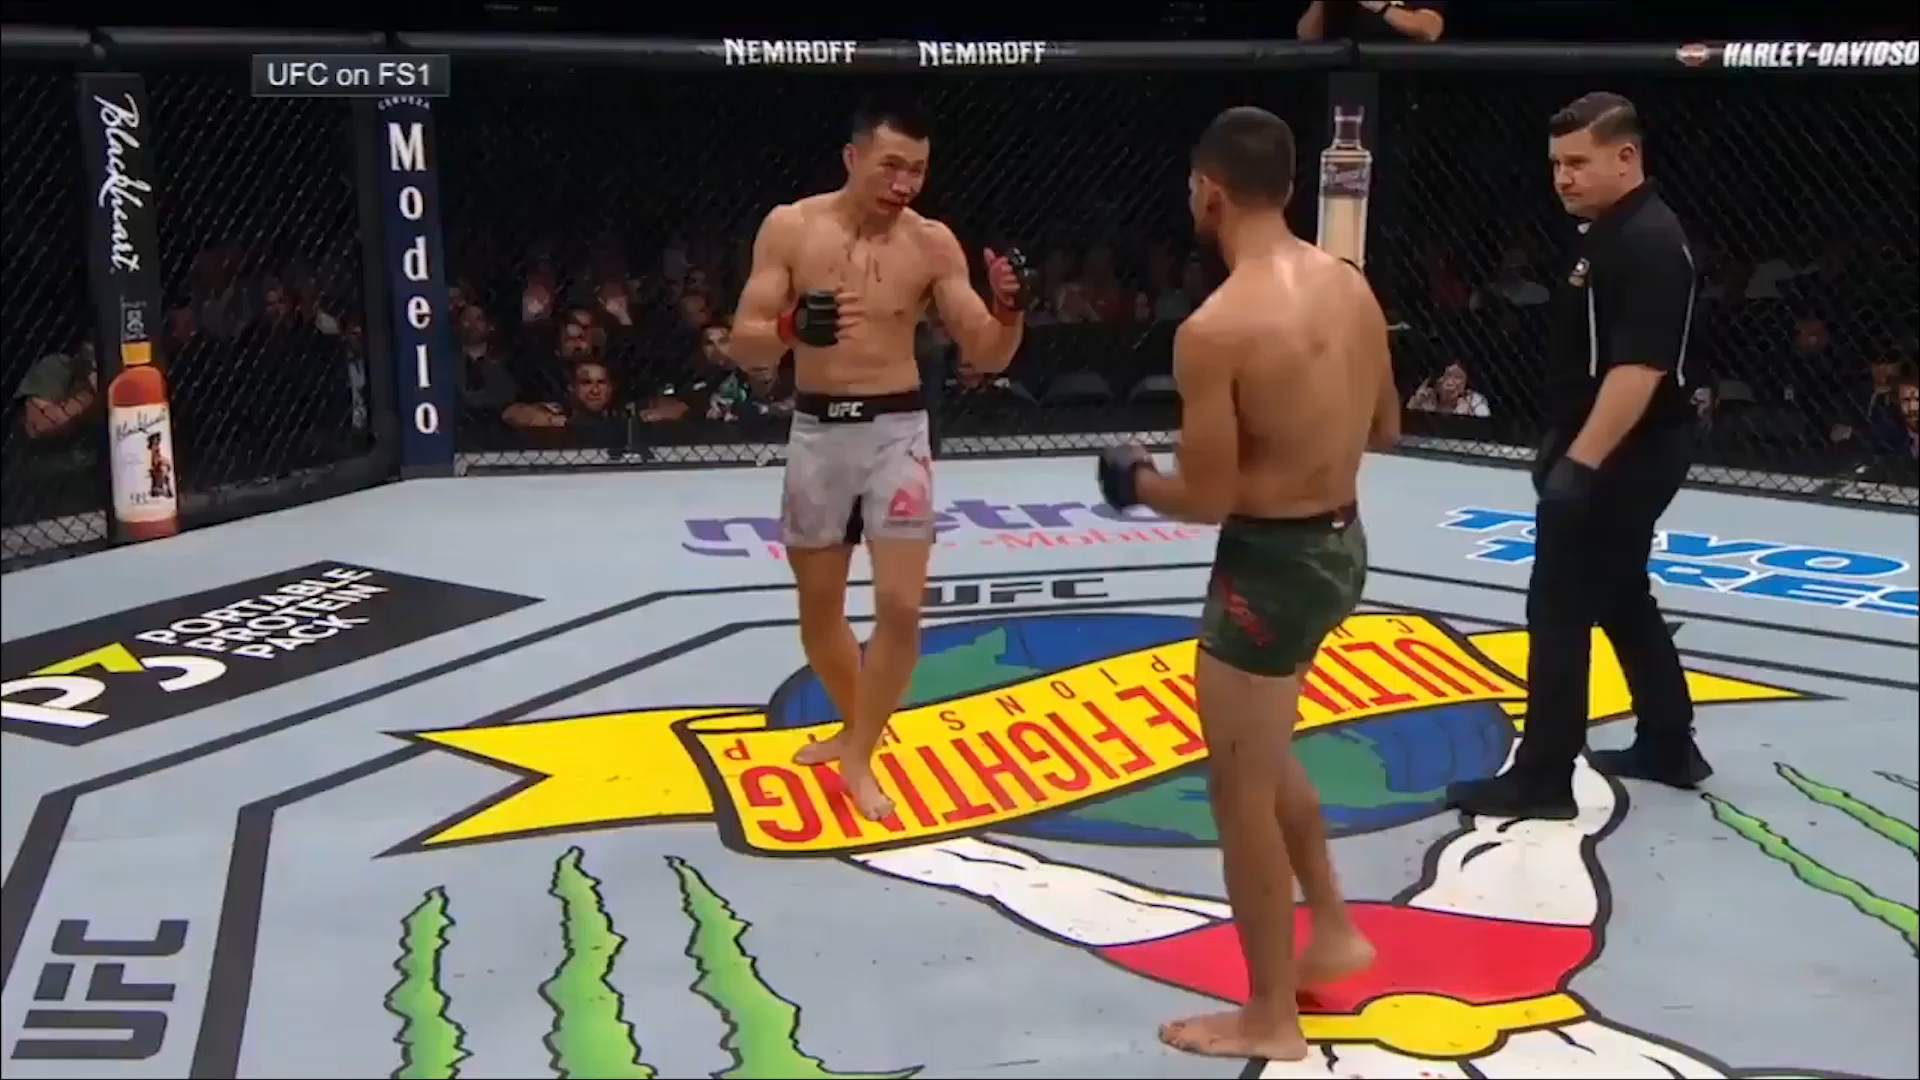 Rodriguez puts up contender for KO of the year